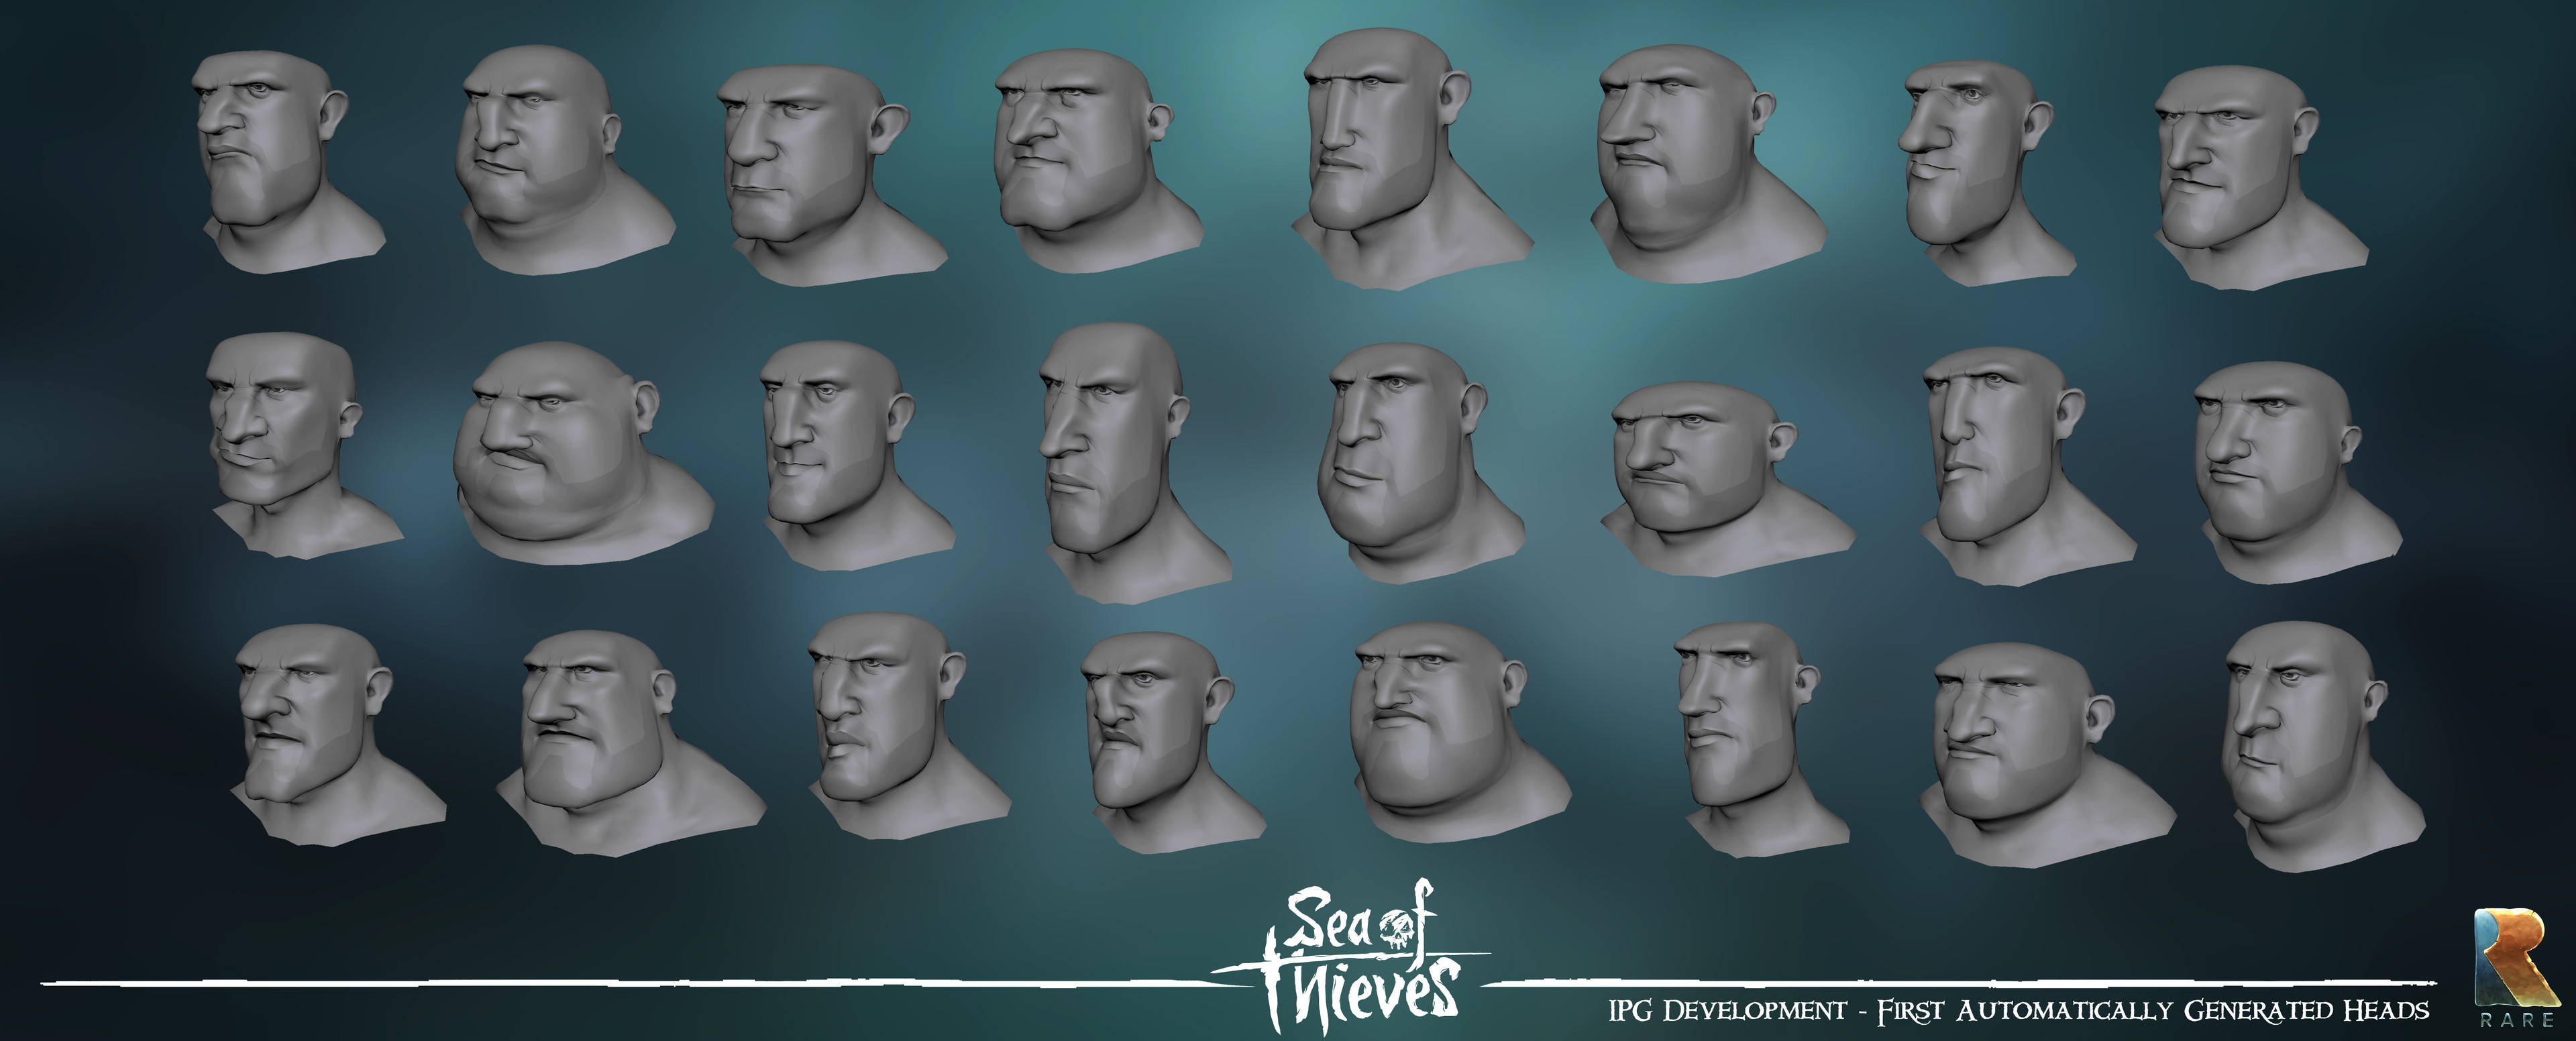 IPG - Very early Maya side IPG tests.  Fully automatically generated heads.